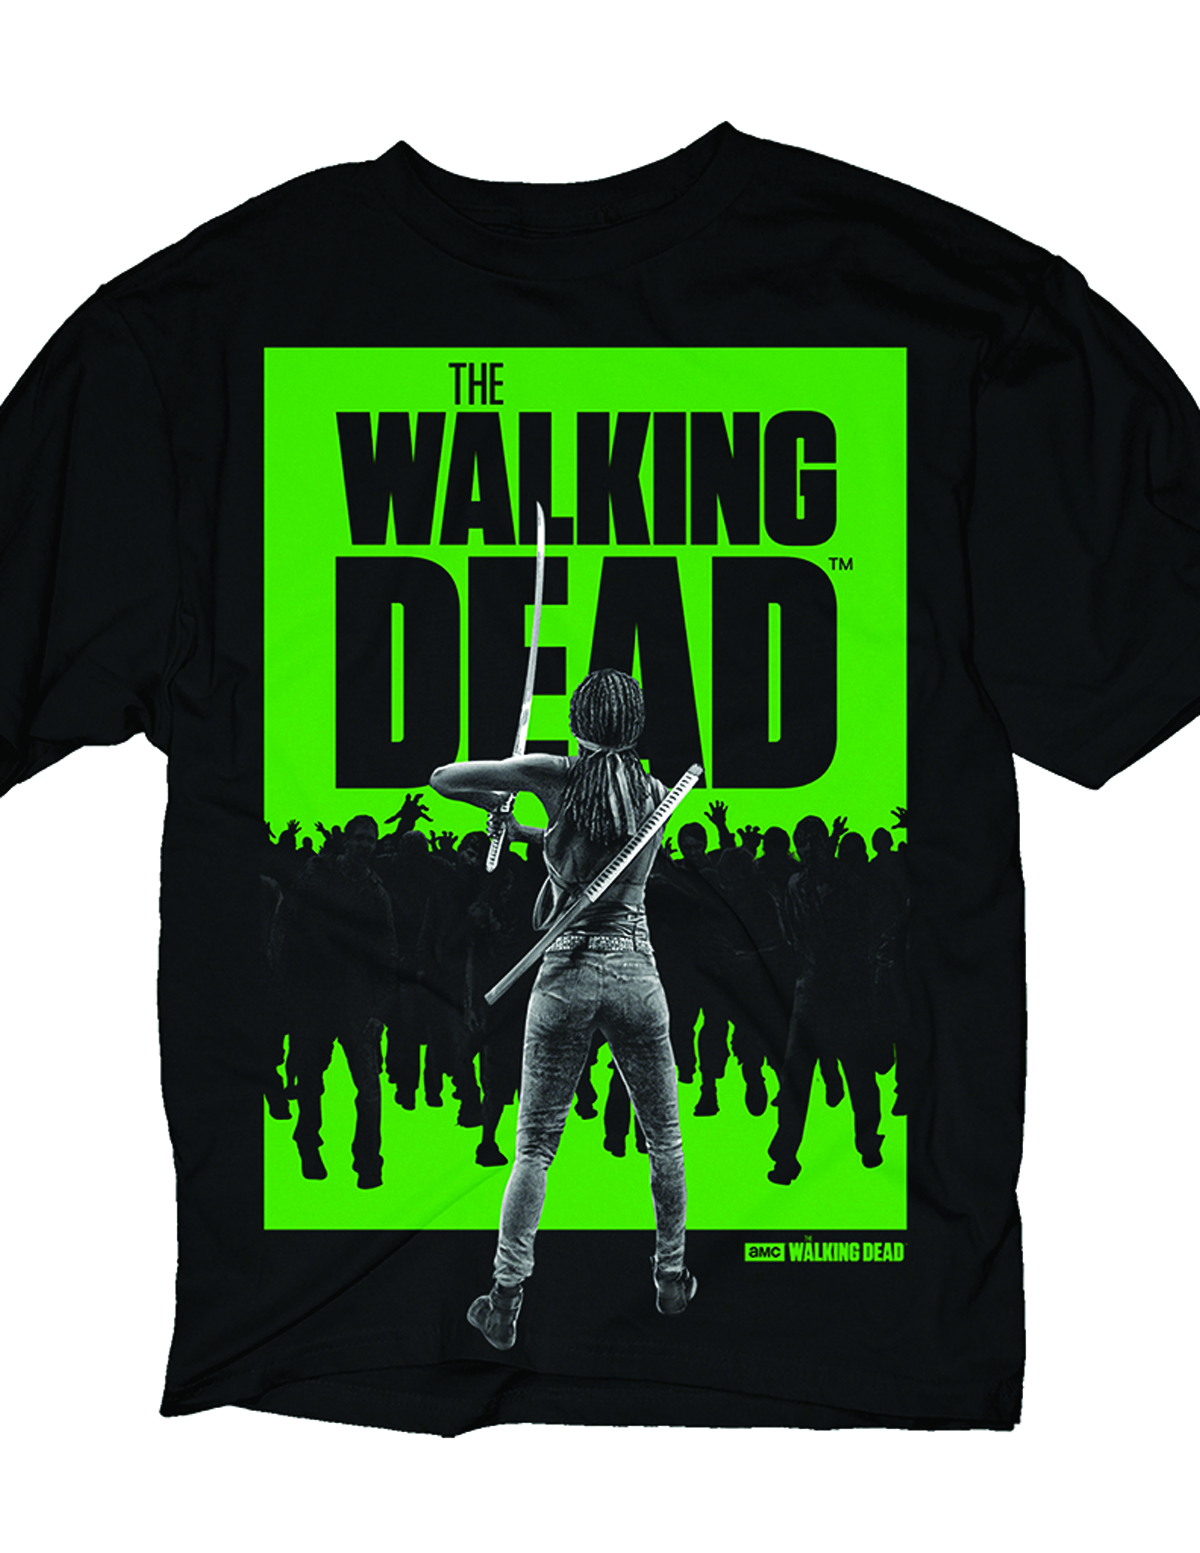 WALKING DEAD MICHONNE WALKER PX BLK T/S LG